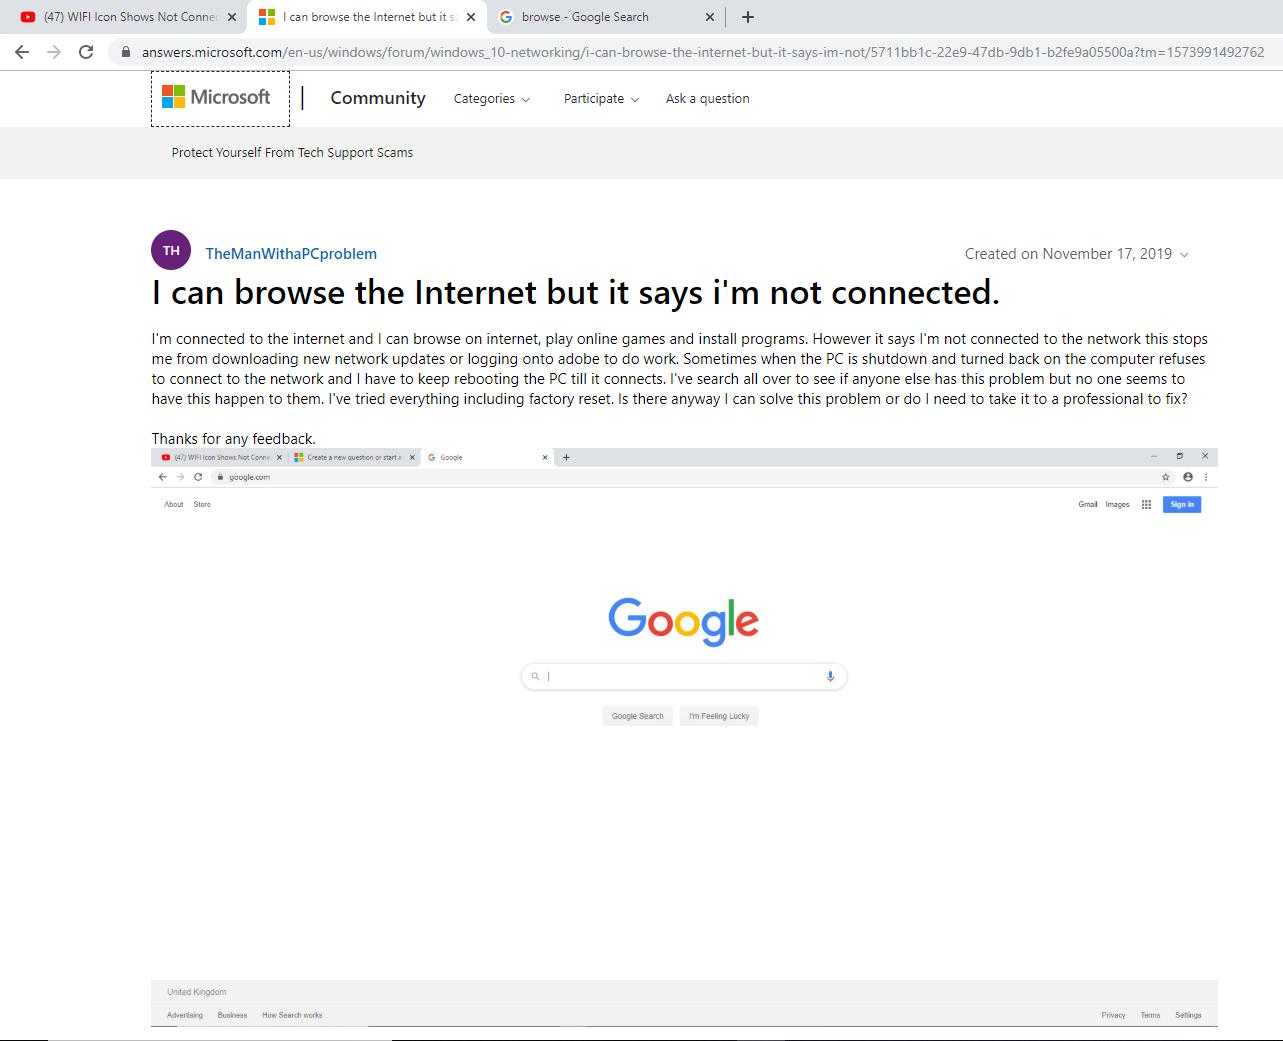 I can browse the Internet but it says i'm not connected. 78ae4774-8c02-4b67-aa3b-fbdb053e7c49?upload=true.png